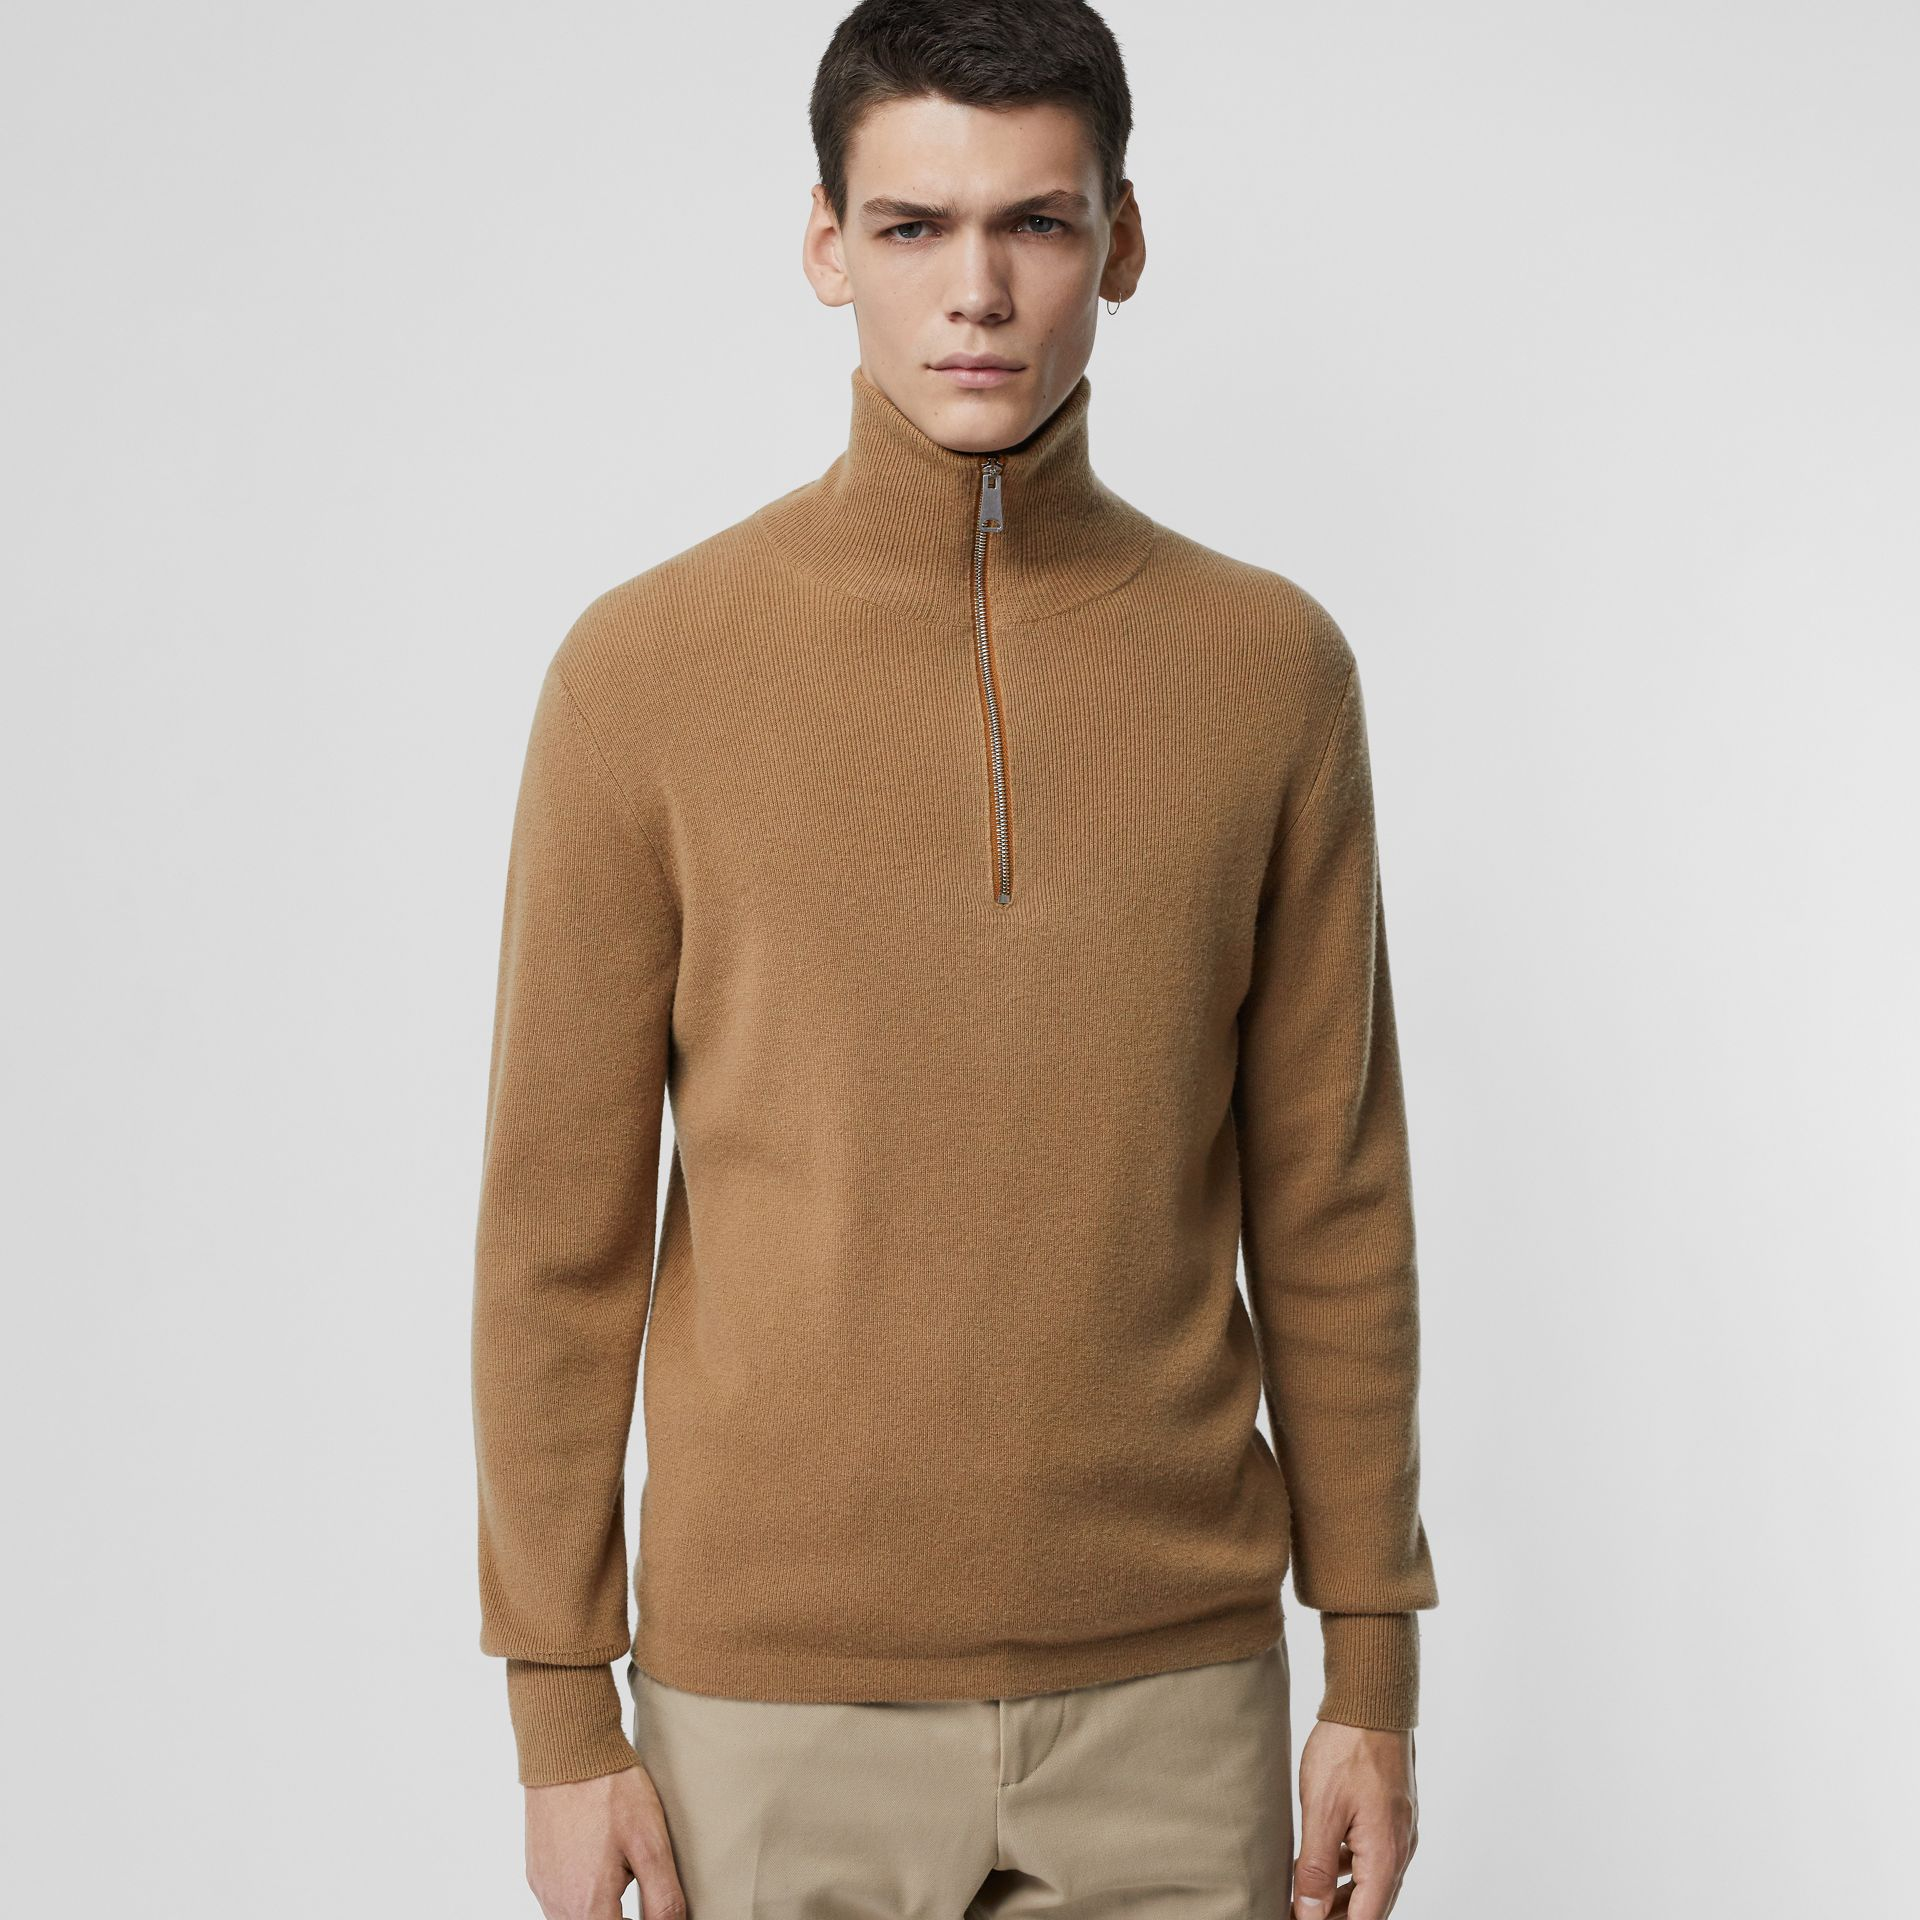 Rib Knit Cashmere Half-zip Sweater in Camel - Men | Burberry United States - gallery image 0